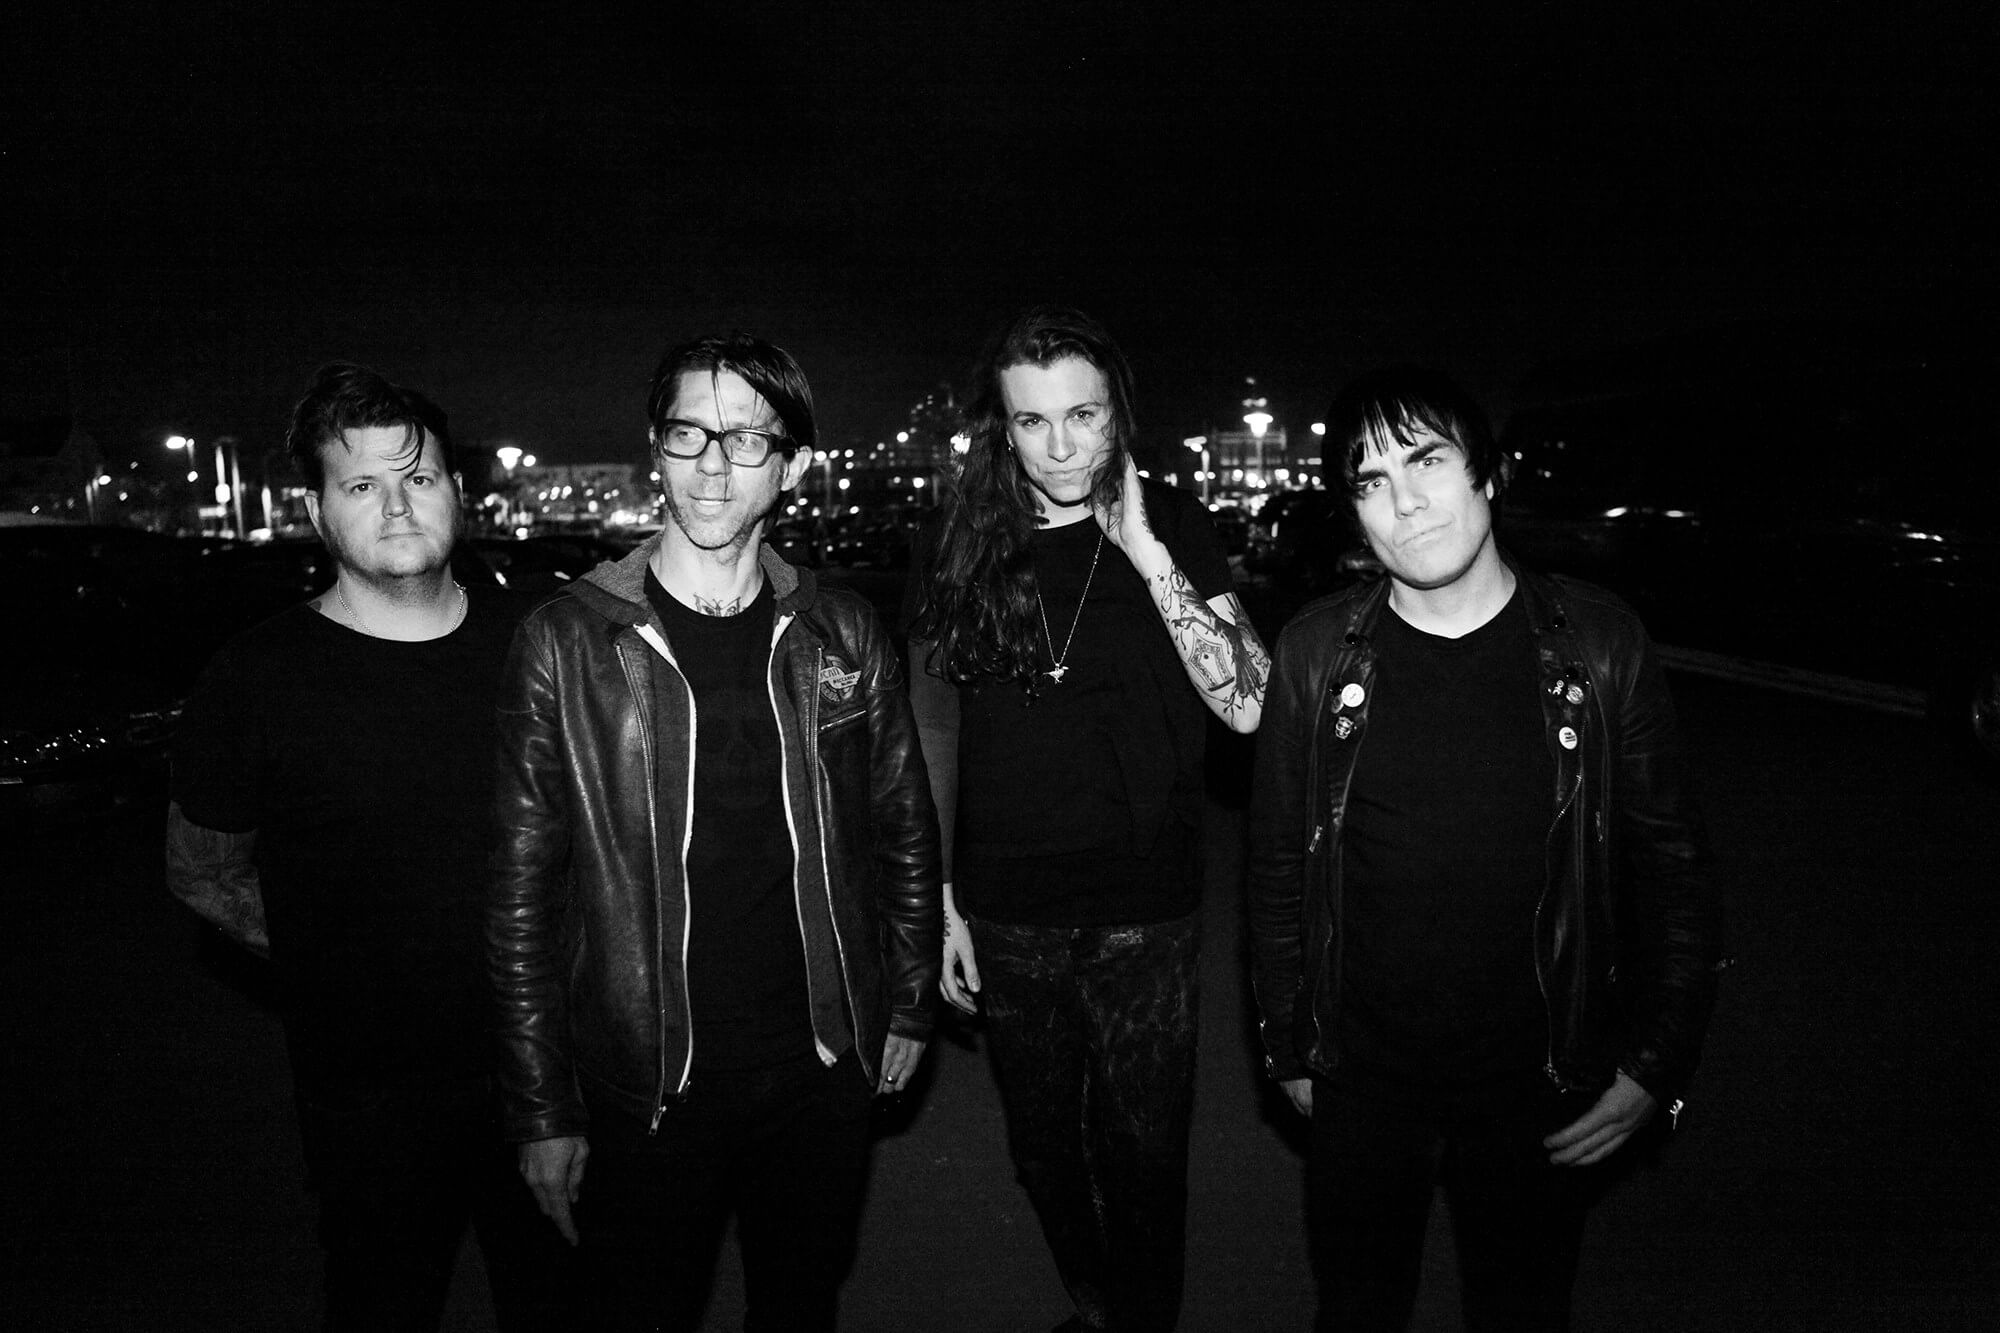 Ouça o novo álbum do Against Me!: 'Shape Shift With Me'